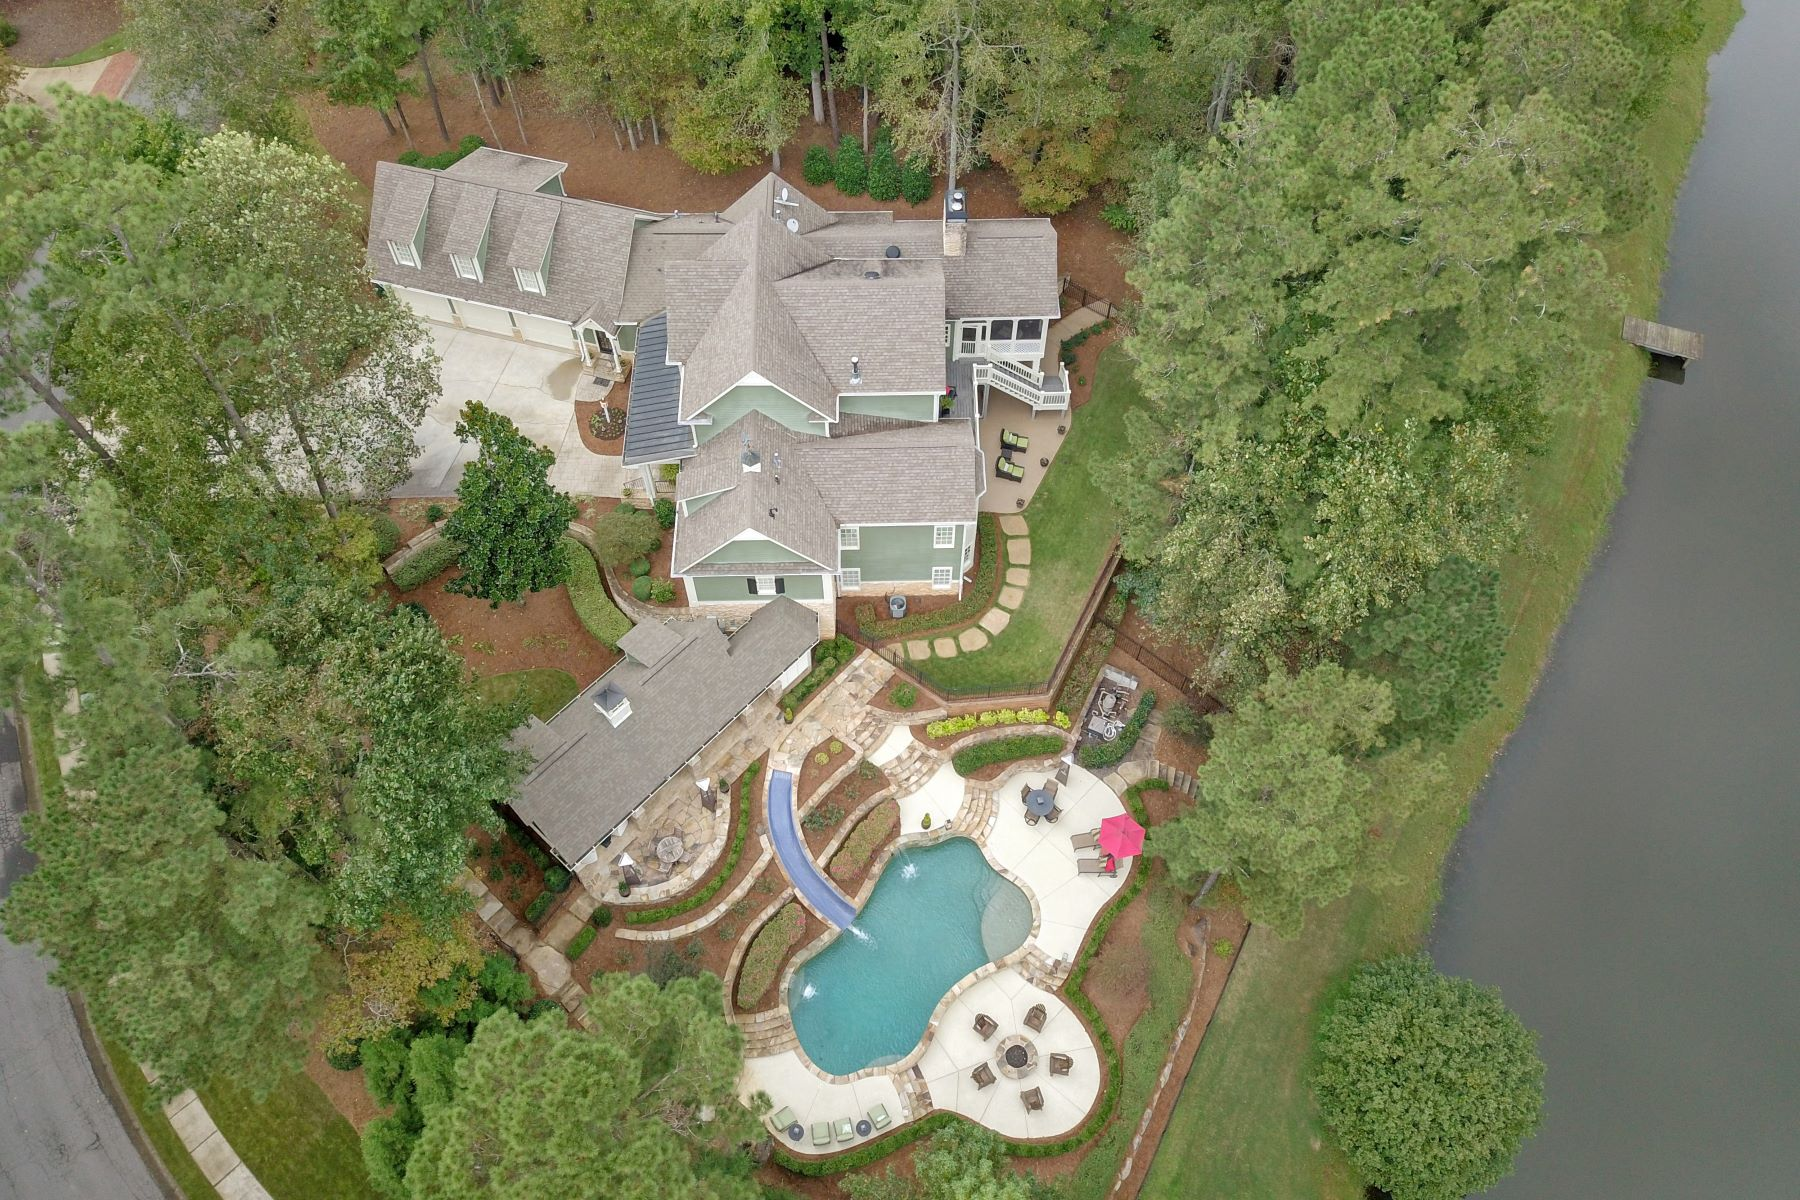 Single Family Home for Sale at Gorgeous Southern Living Executive Home Nestled On a Private Lakefront Lot! 2825 Tanner Lake Trail NW Marietta, Georgia 30064 United States